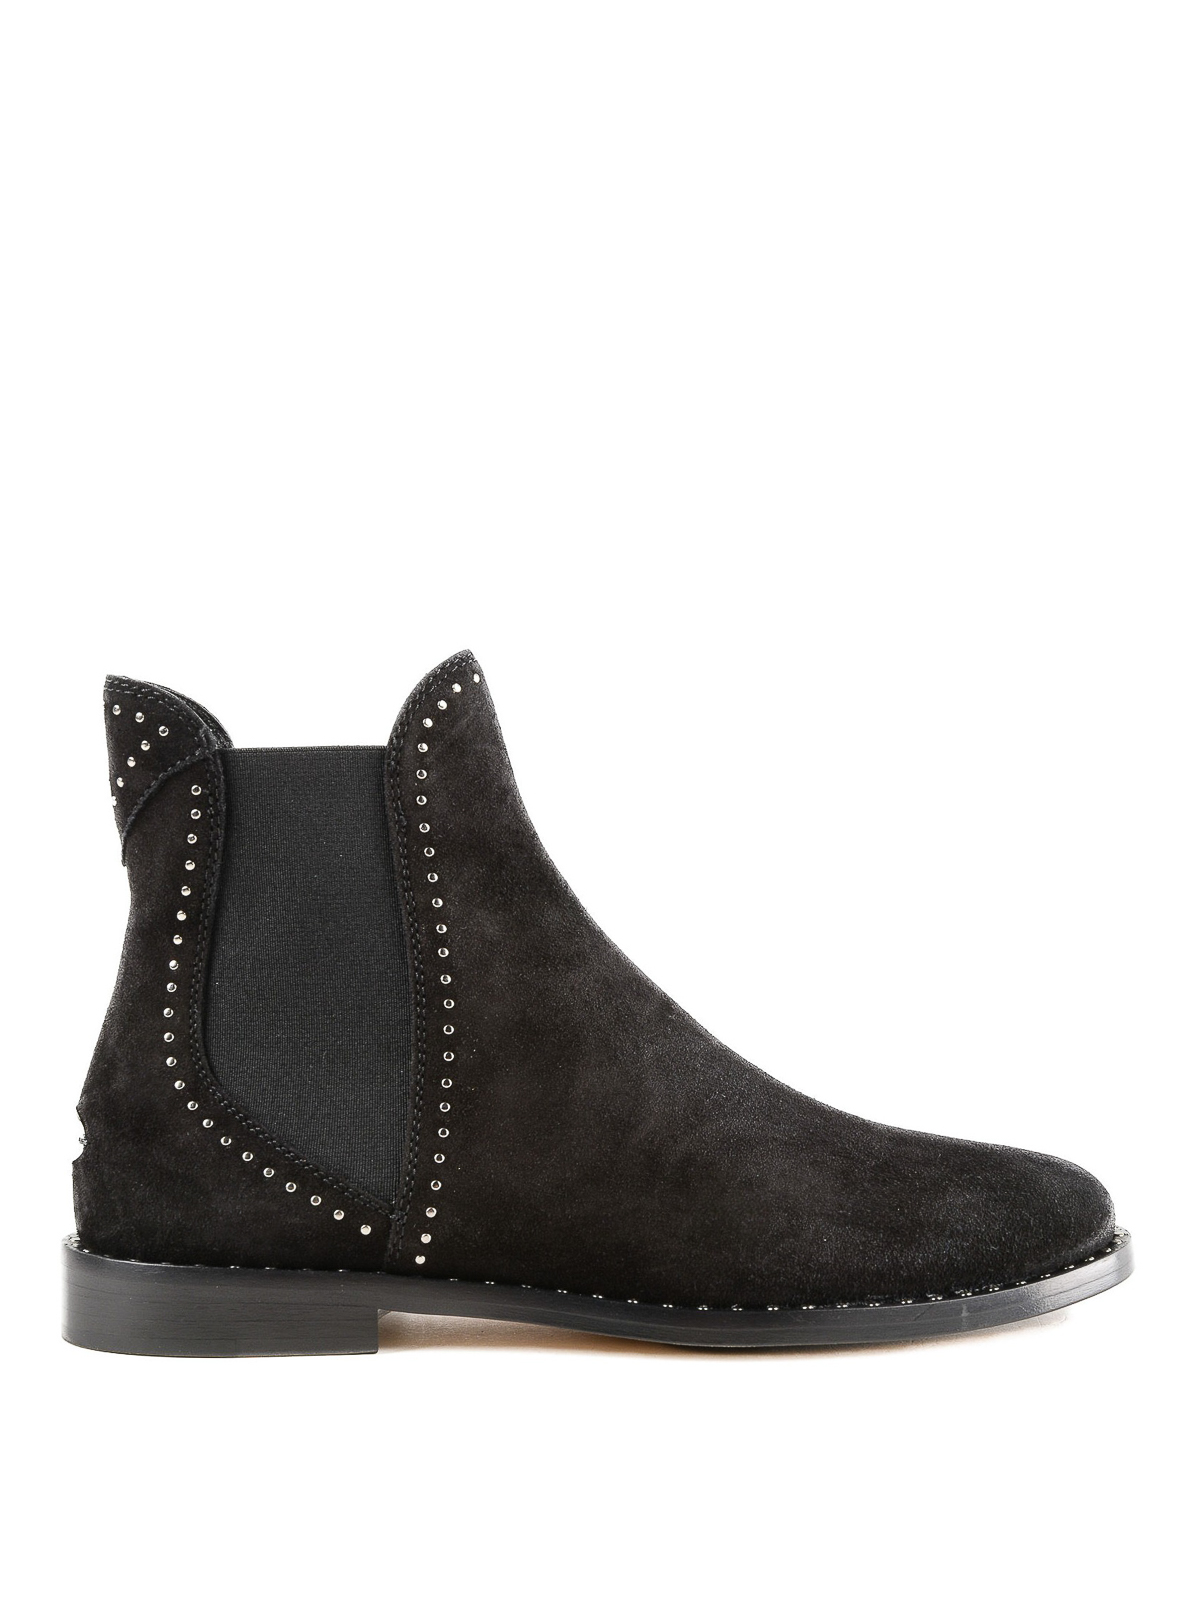 33e715bb9cc Jimmy Choo - Merril stud detail suede flat booties - ankle boots ...